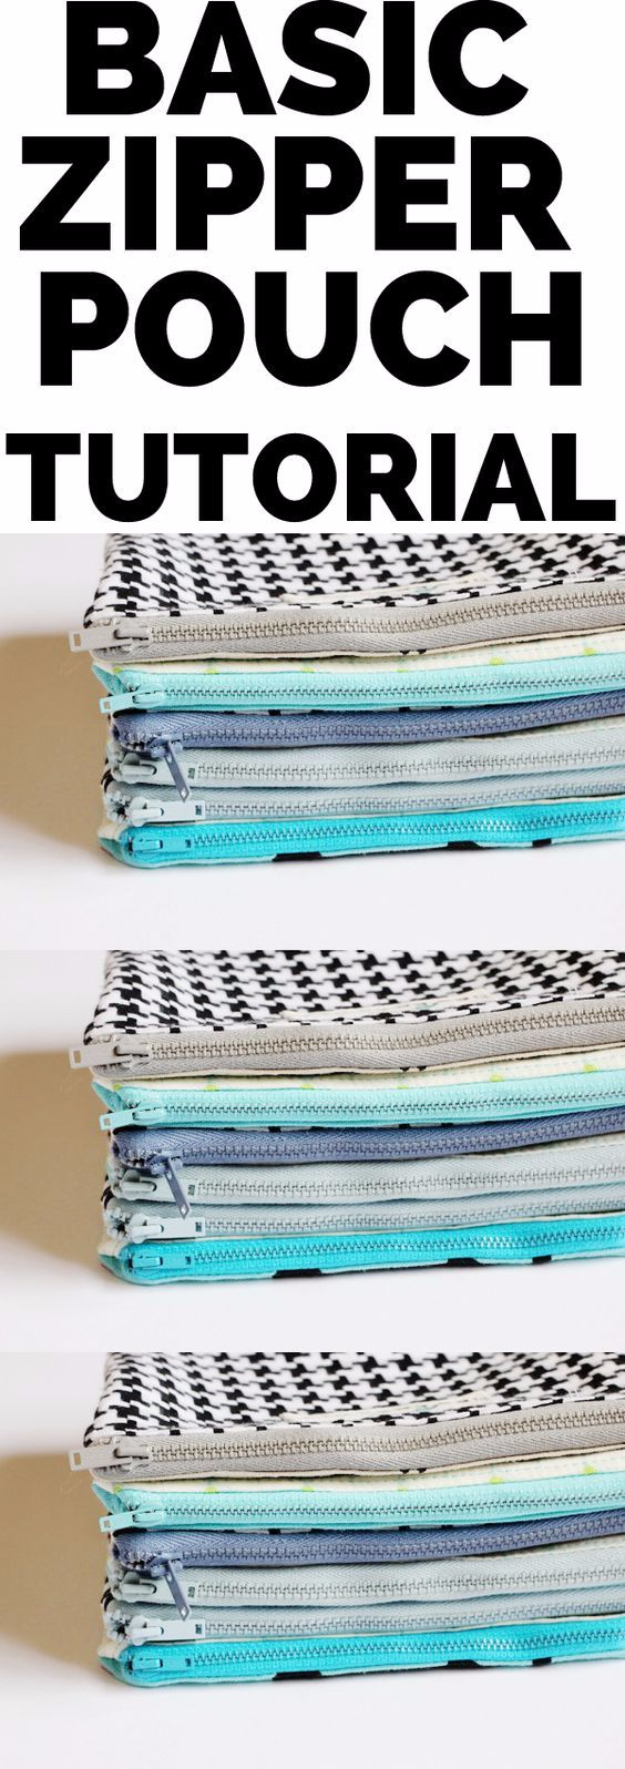 Creative DIY Projects With Zippers - Basic Zipper Pouch - Easy Crafts and Fashion Ideas With A Zipper - Jewelry, Home Decor, School Supplies and DIY Gift Ideas - Quick DIYs for Fun Weekend Projects http://diyjoy.com/diy-projects-zippers